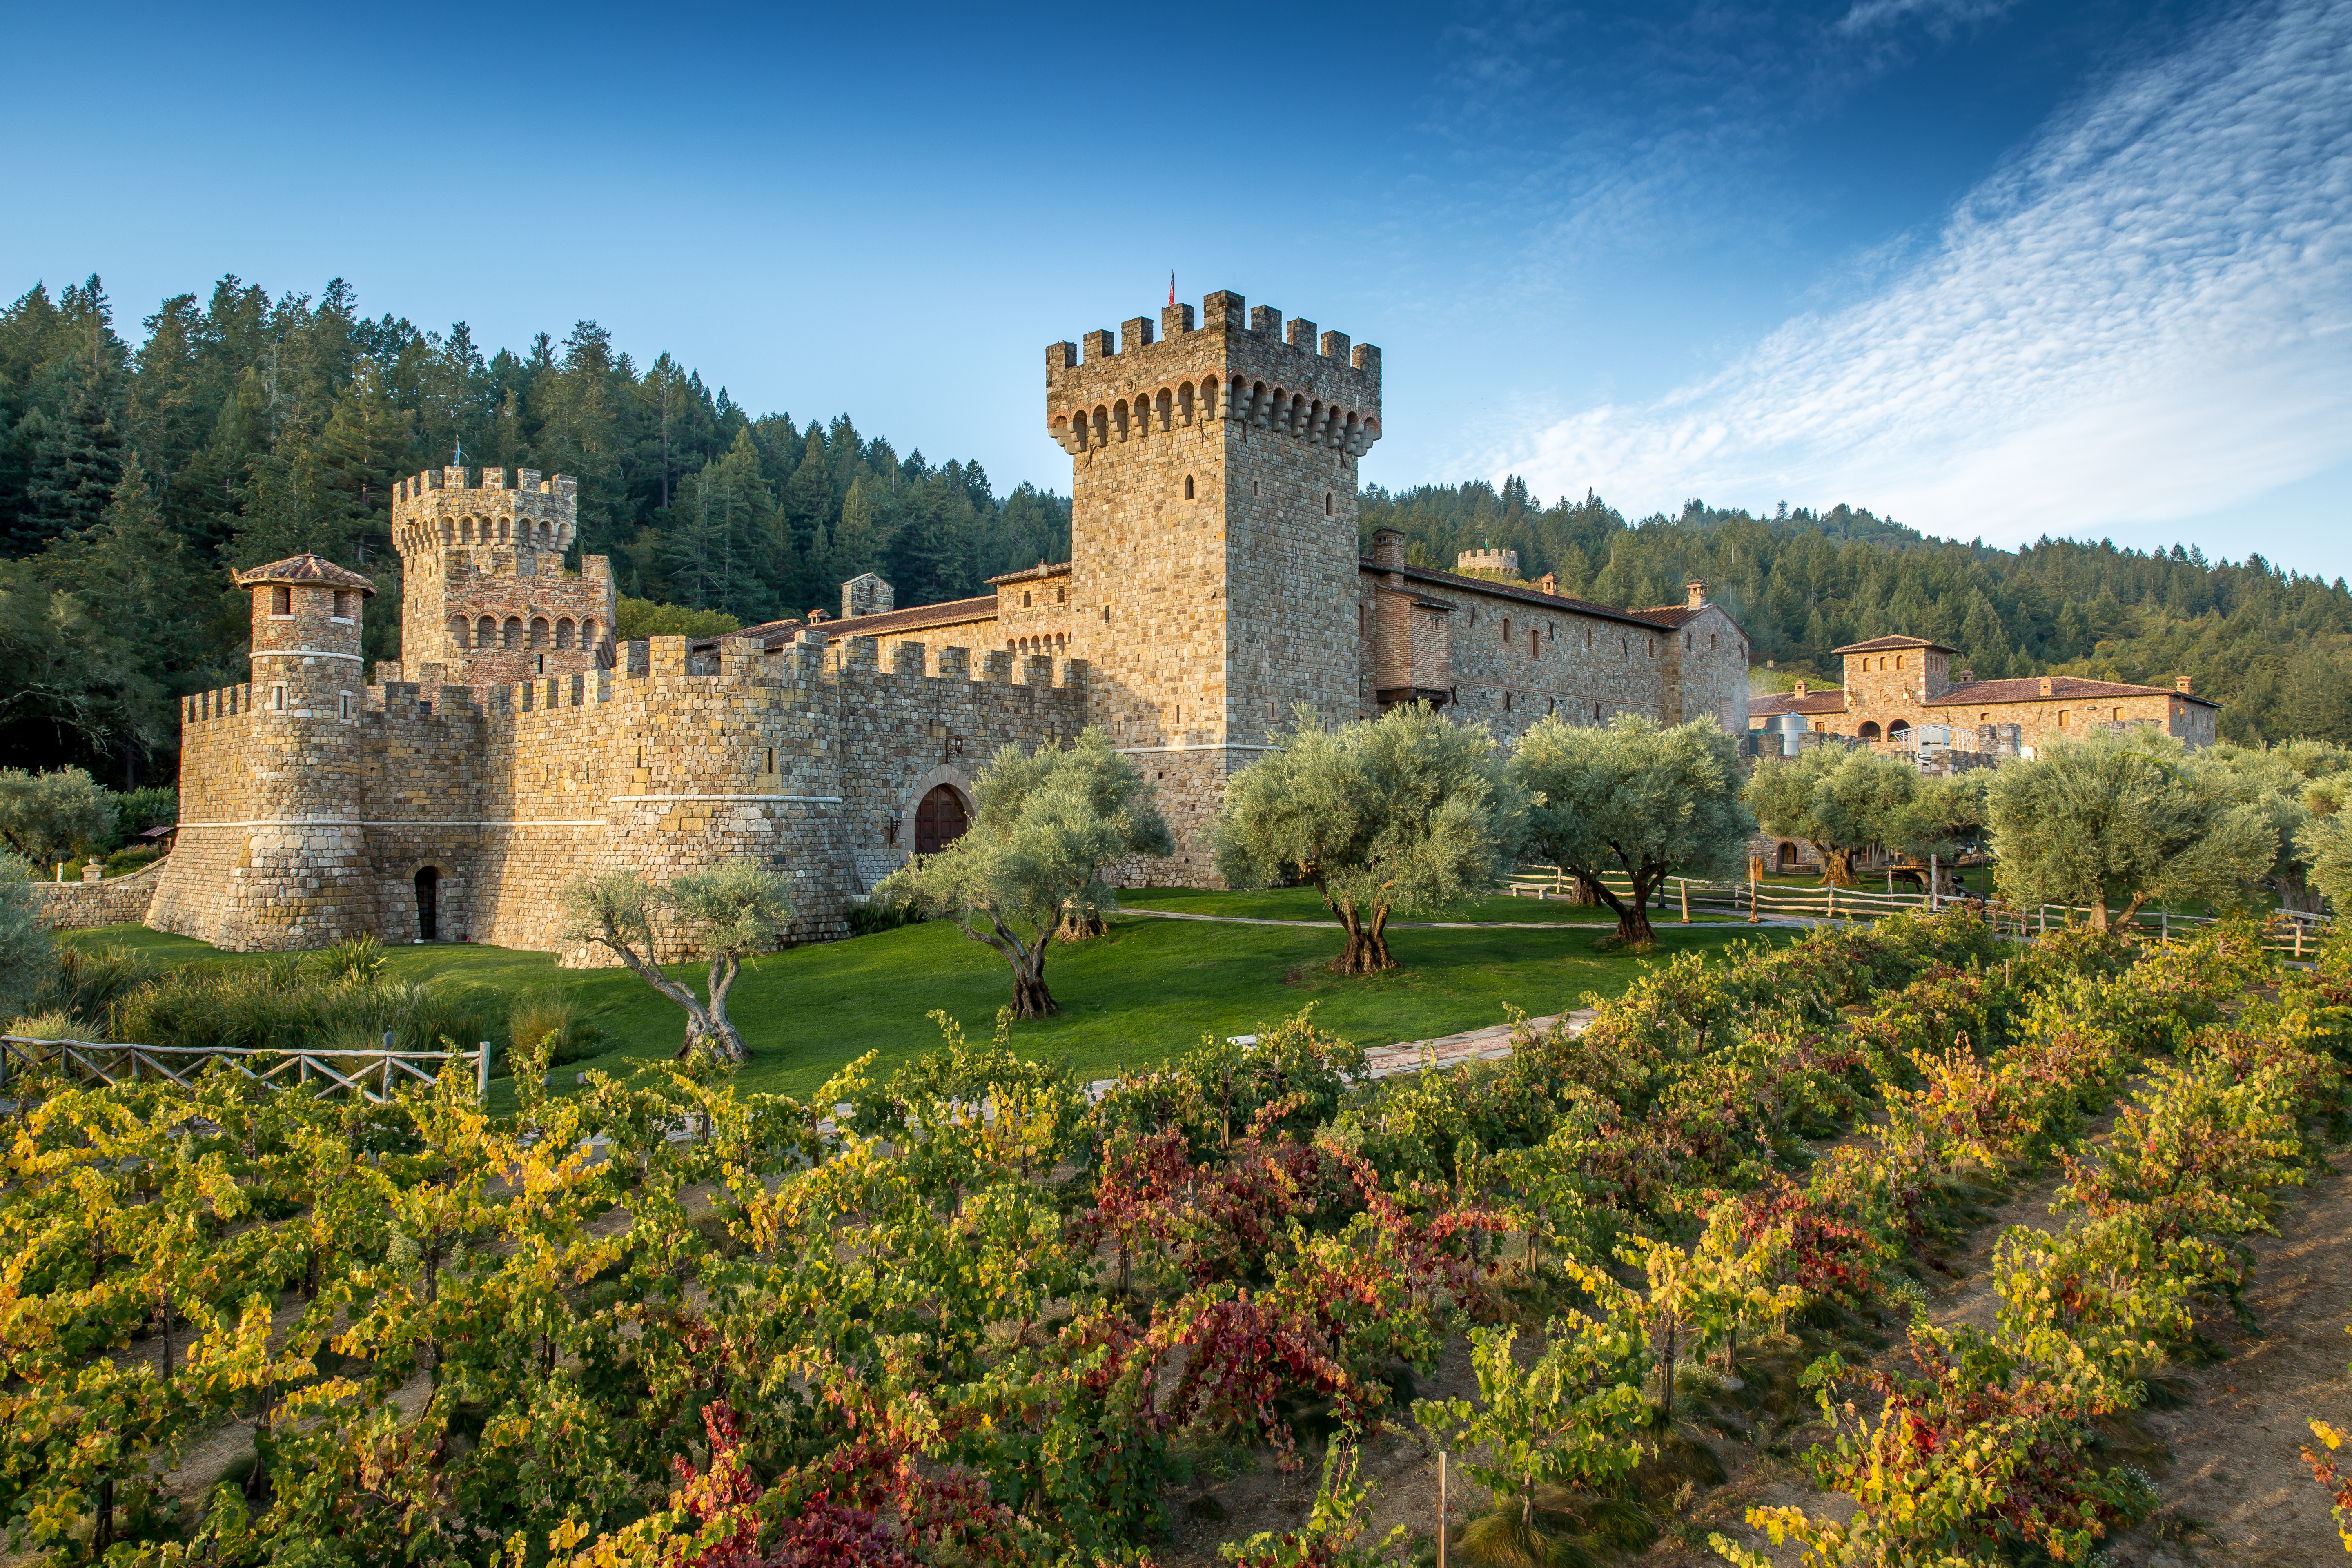 Castle winery photo